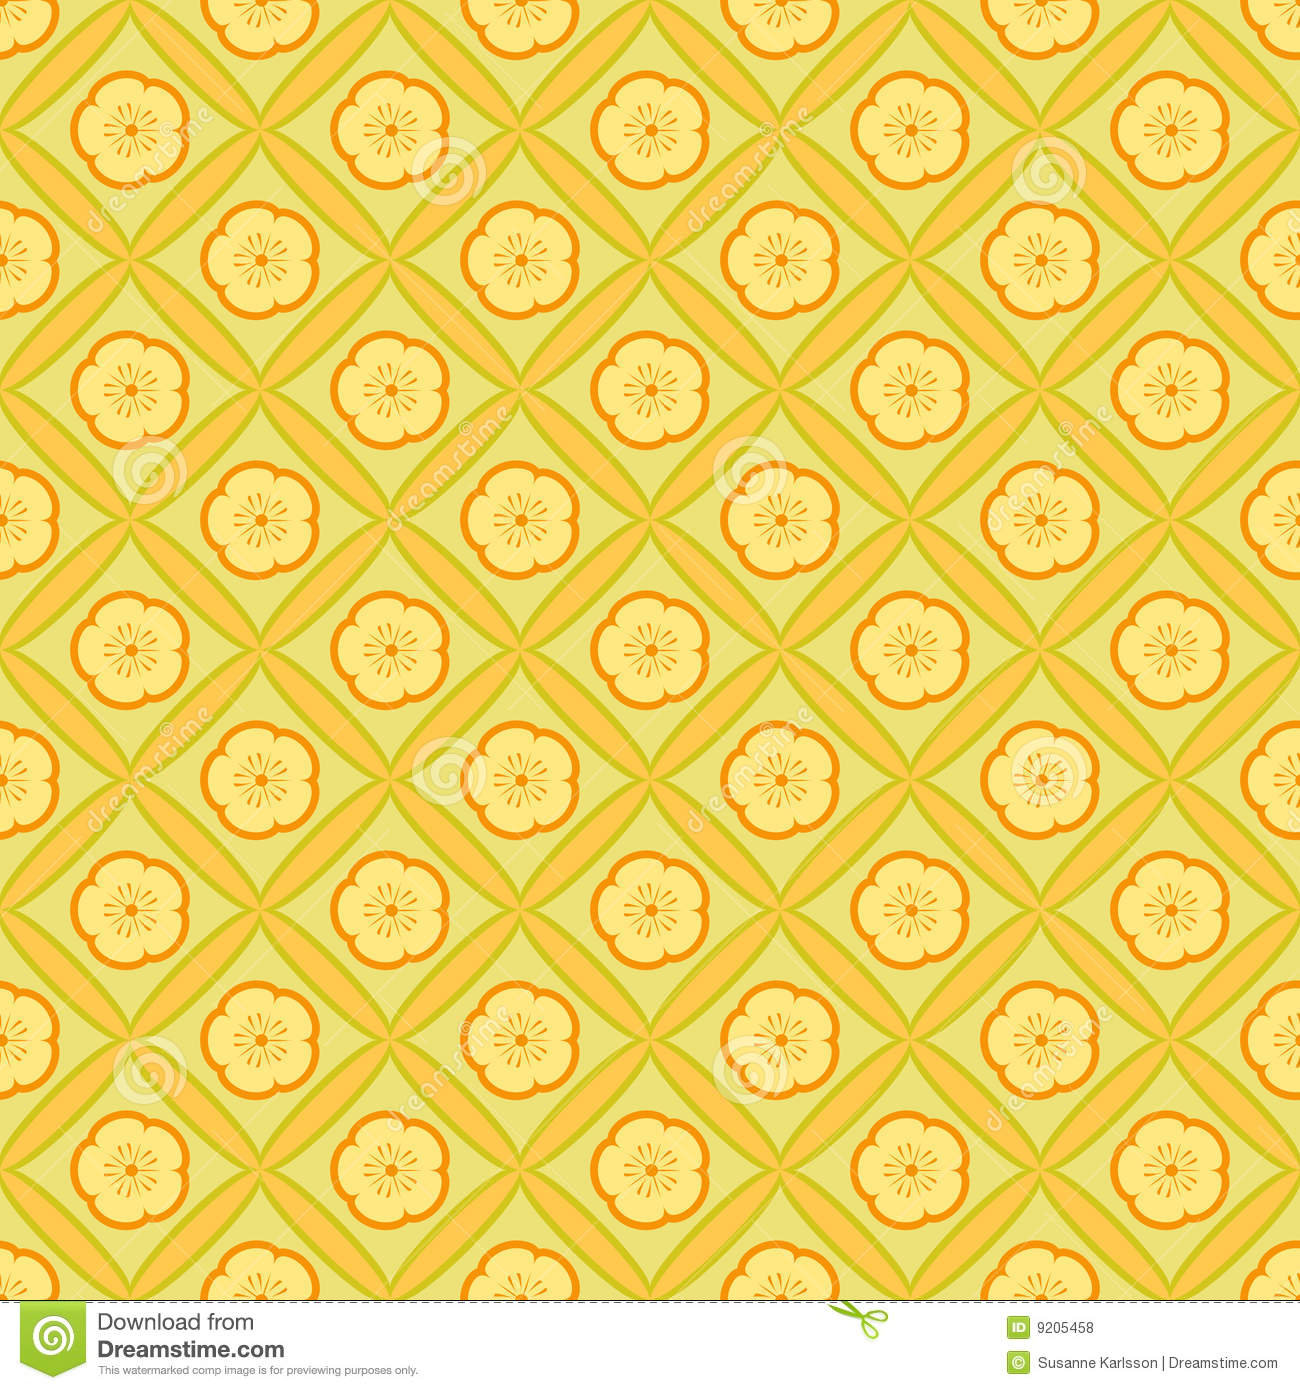 yellow floral pattern - photo #46